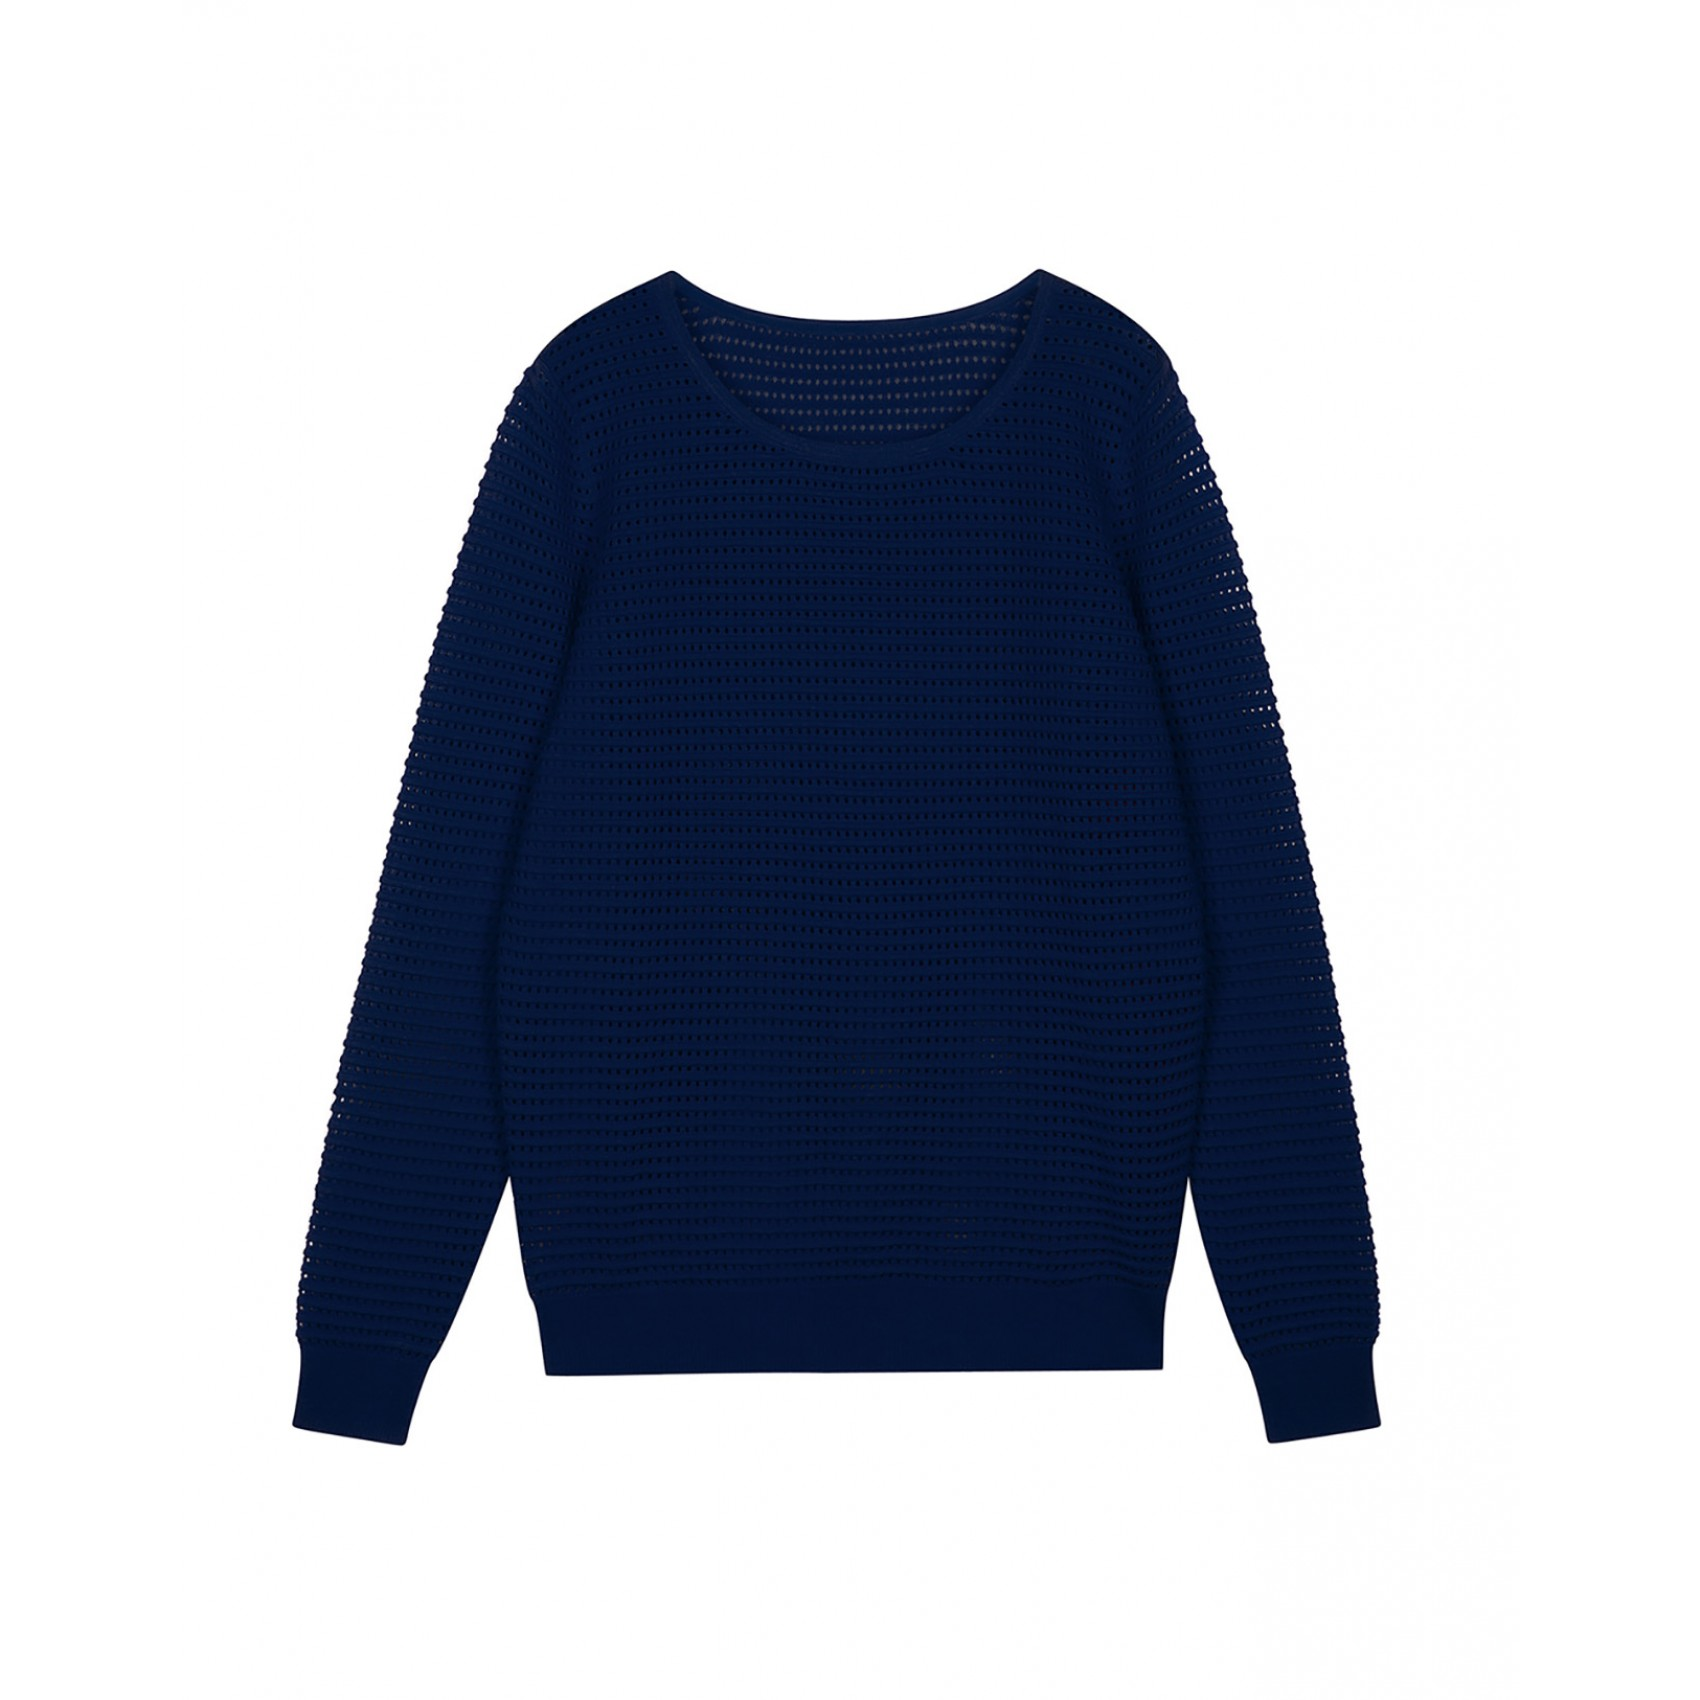 Sandro superbe perforated sweater at sandro us